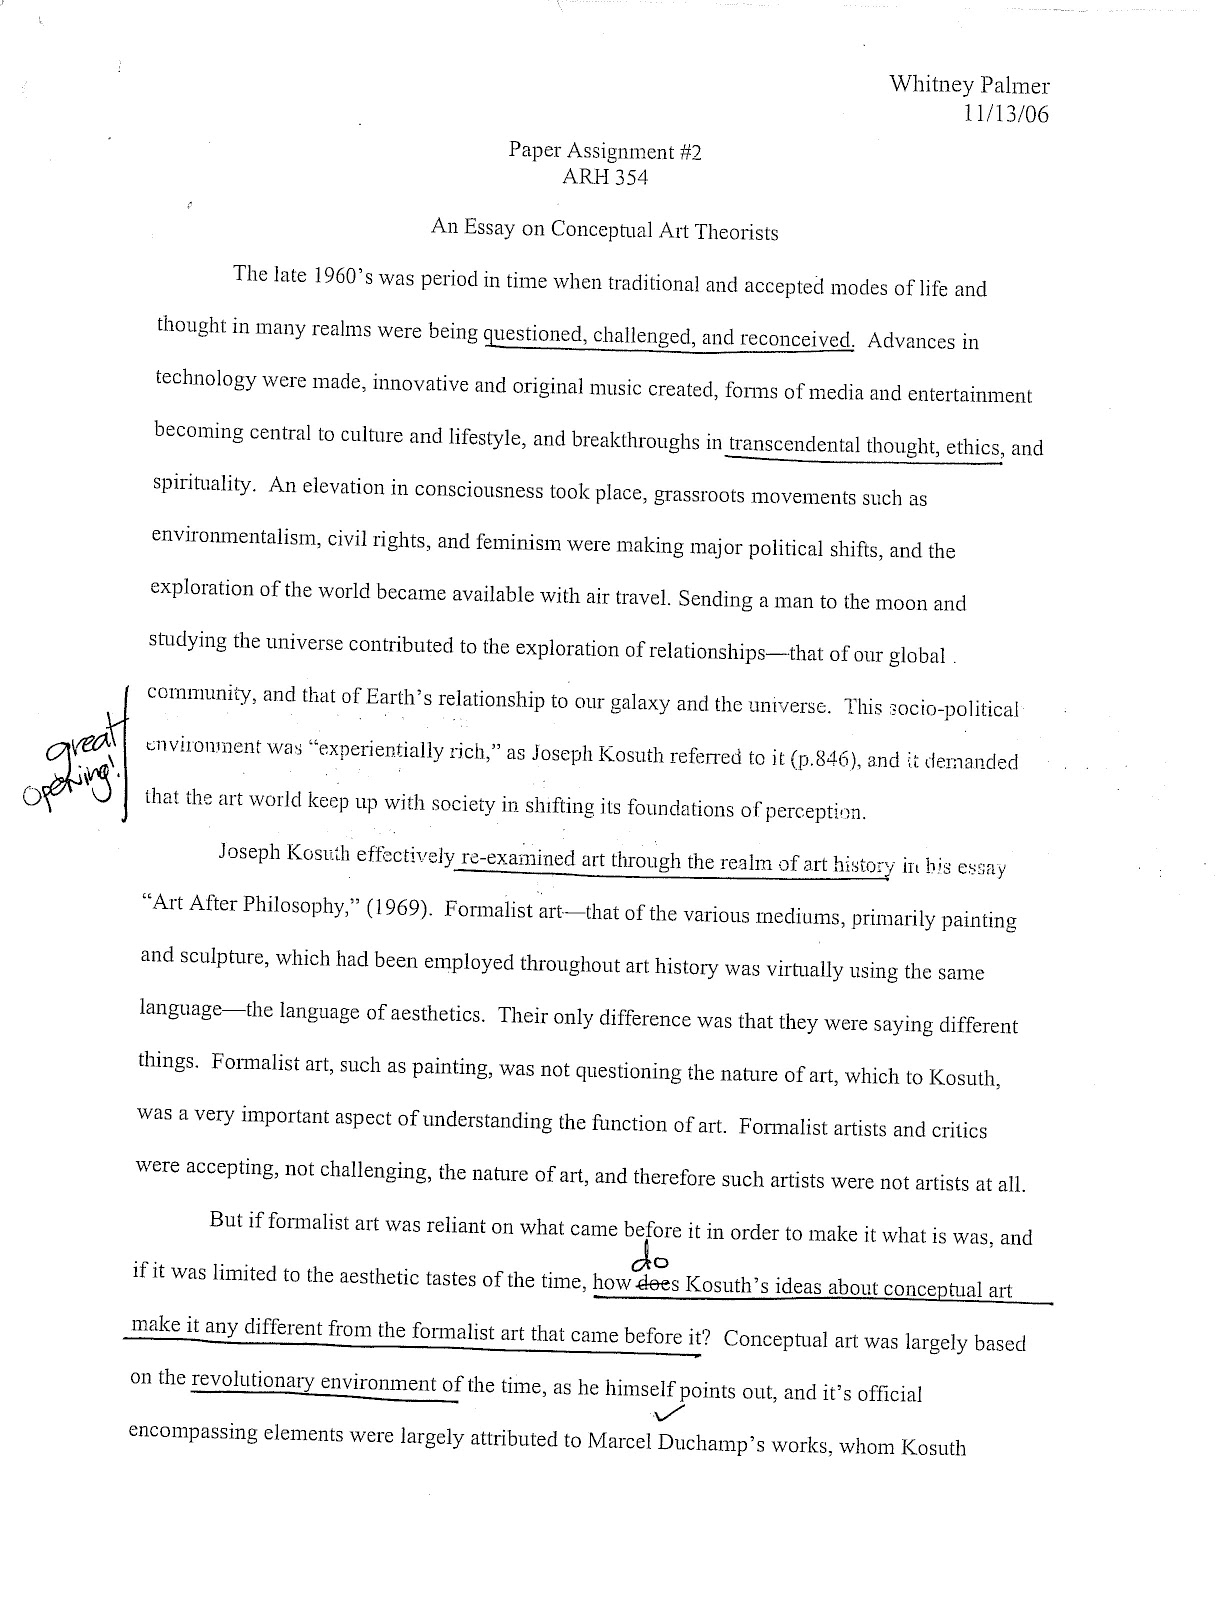 interpretive analysis essay analytical essay thesis example how to  art history essays art history essays compucenter the aim of this essay from art history fall